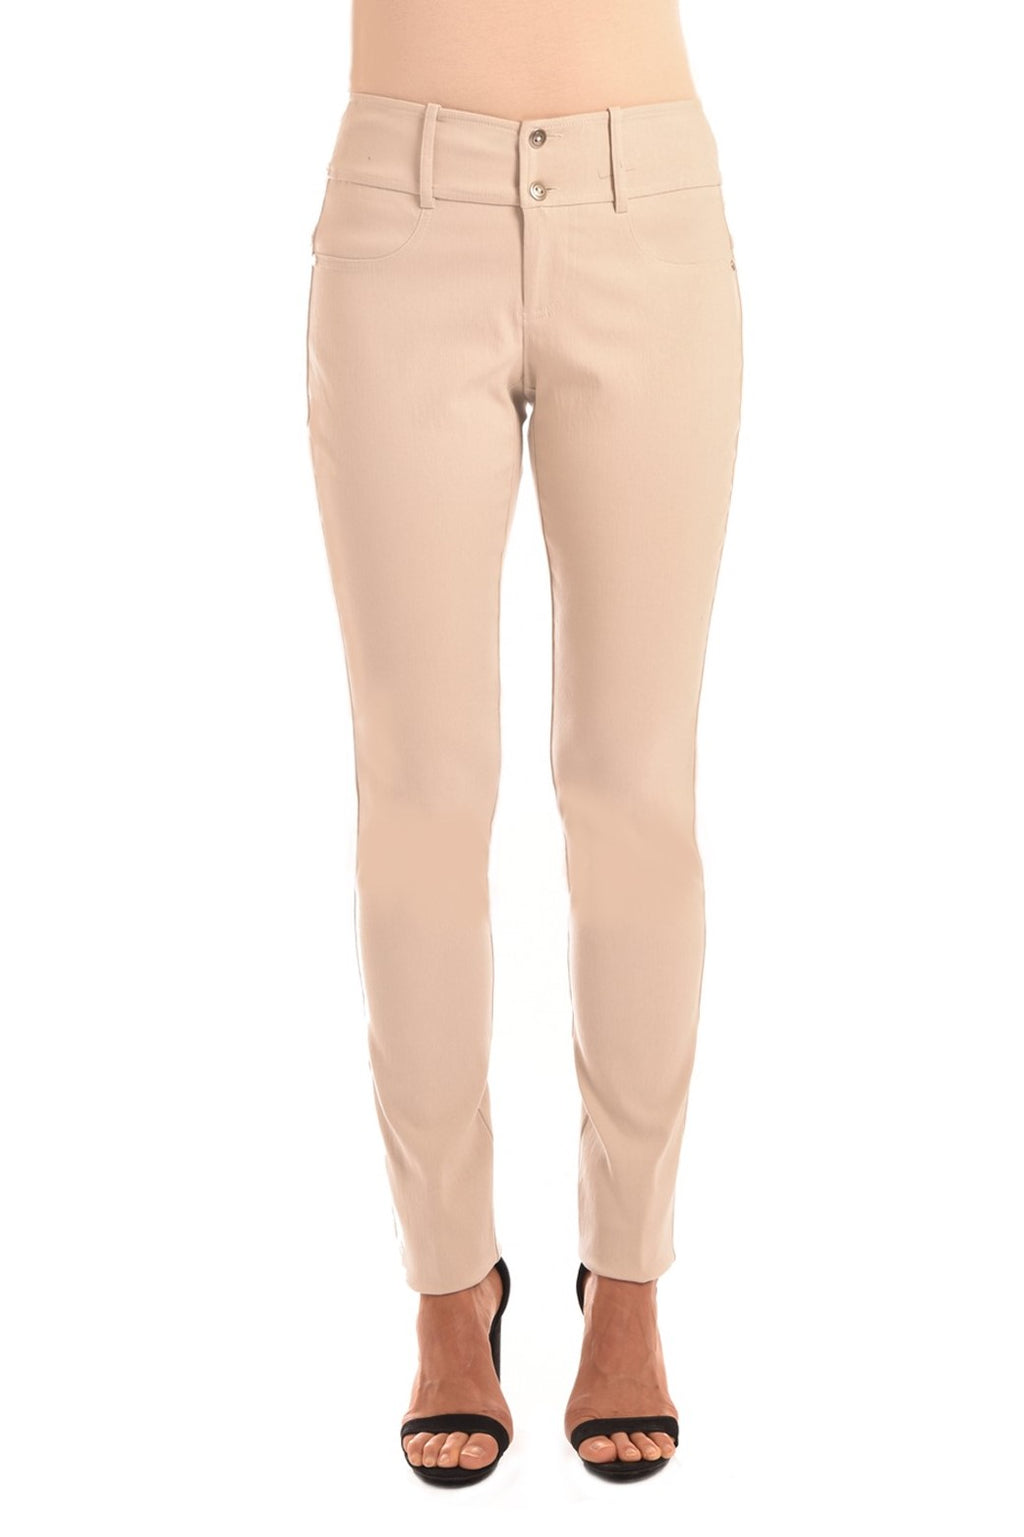 "Skinny 9"" Rise Ankle Pant"